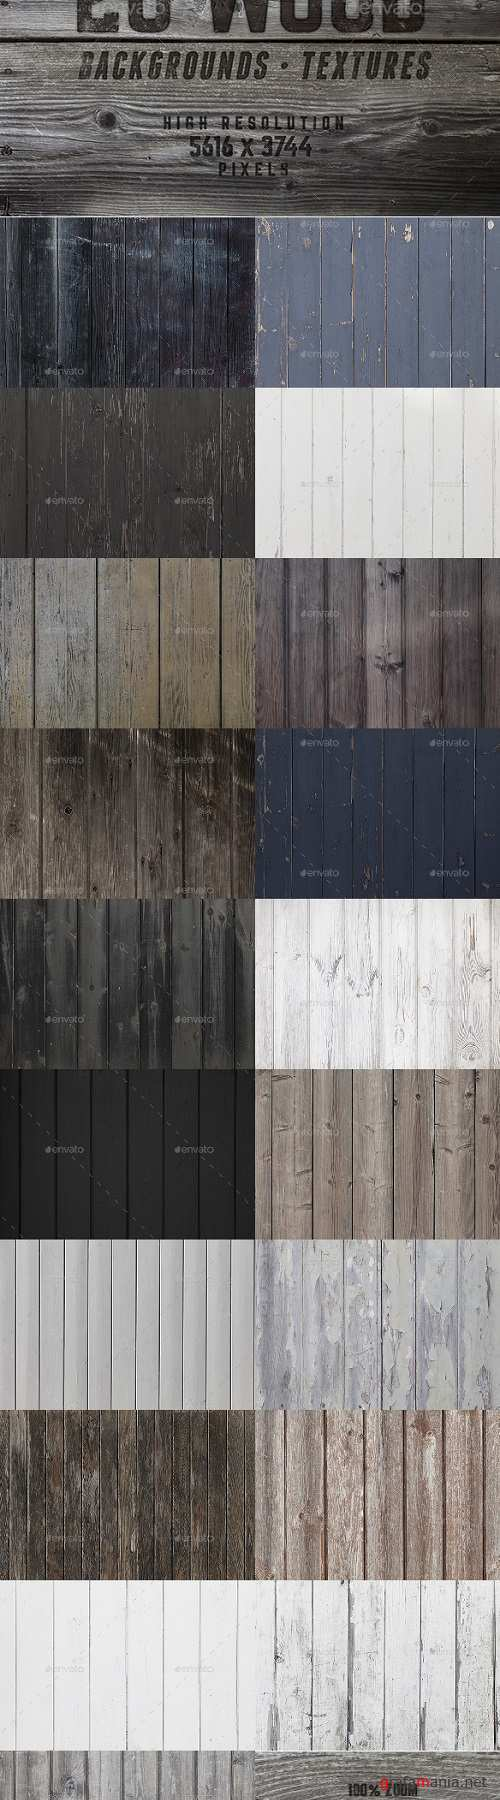 20 Beautiful Wood Backgrounds / Textures 20222804